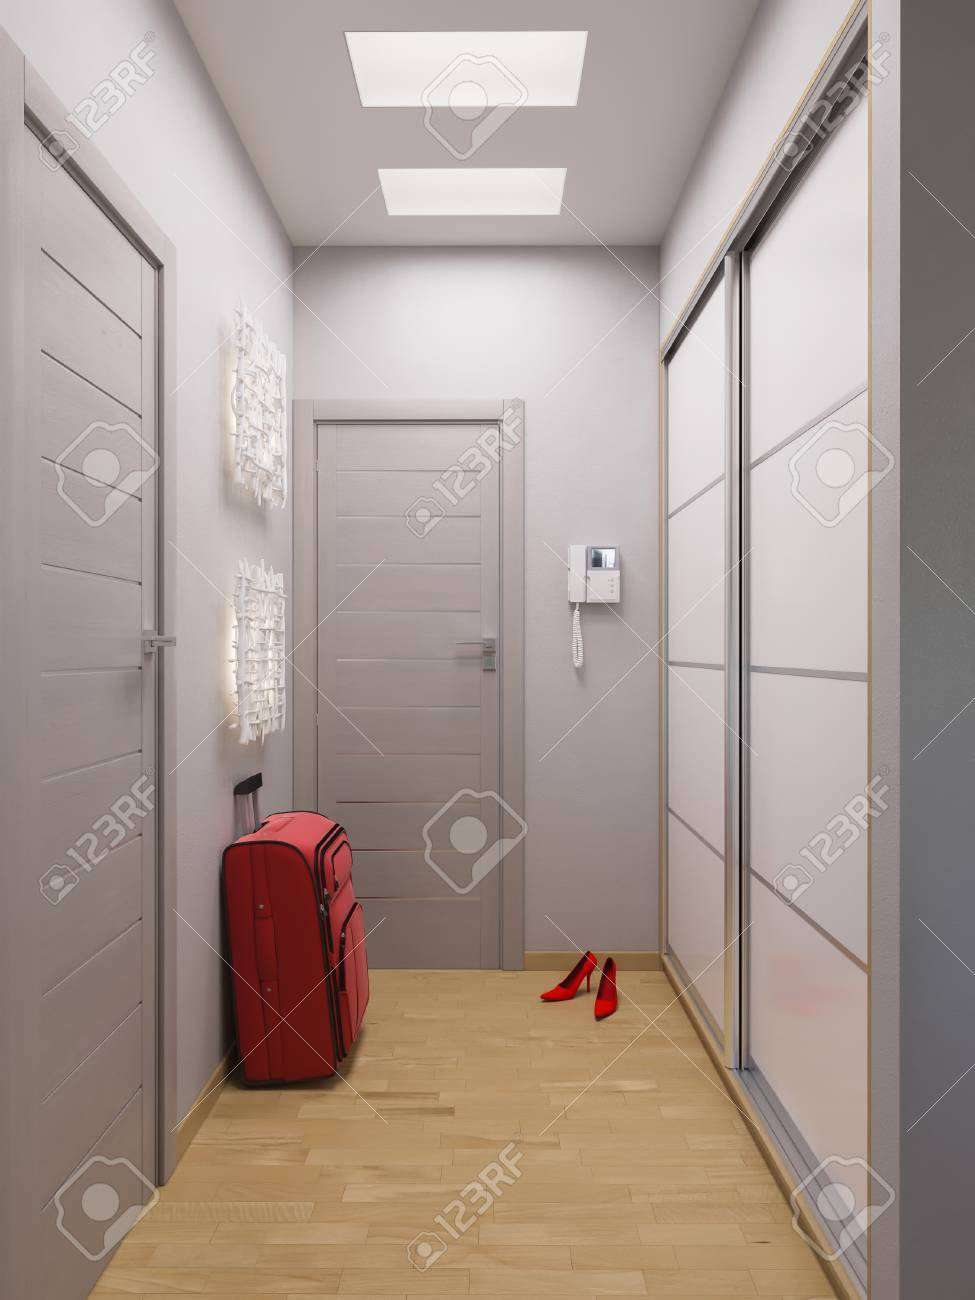 3d Illustration Hallway Interior Design Modern Studio Apartment